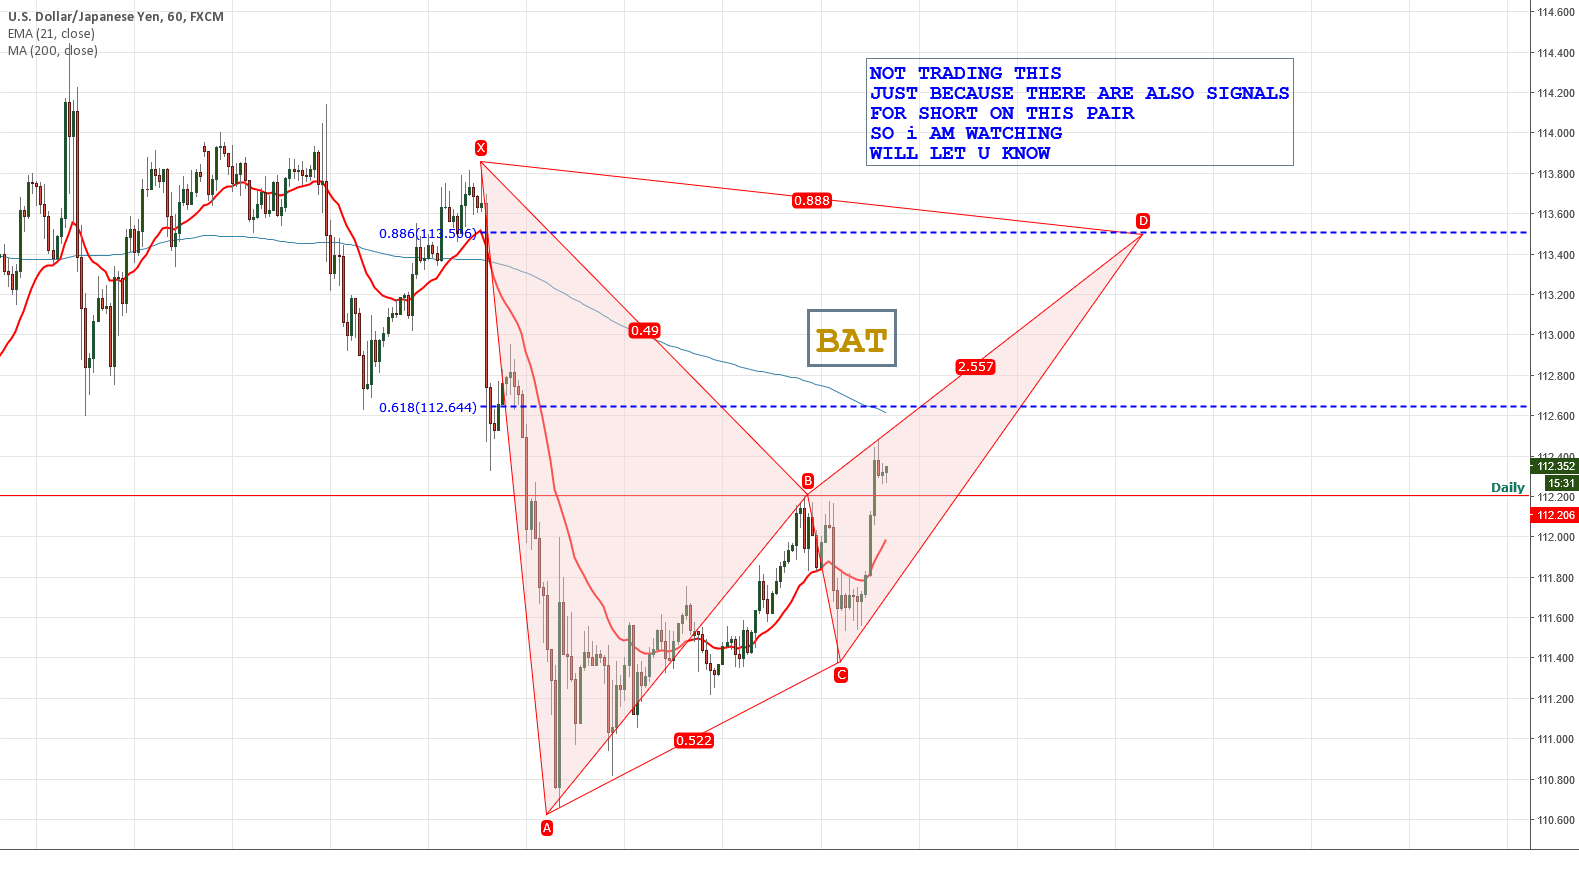 USDJPY LOL POSSIBLE BAT